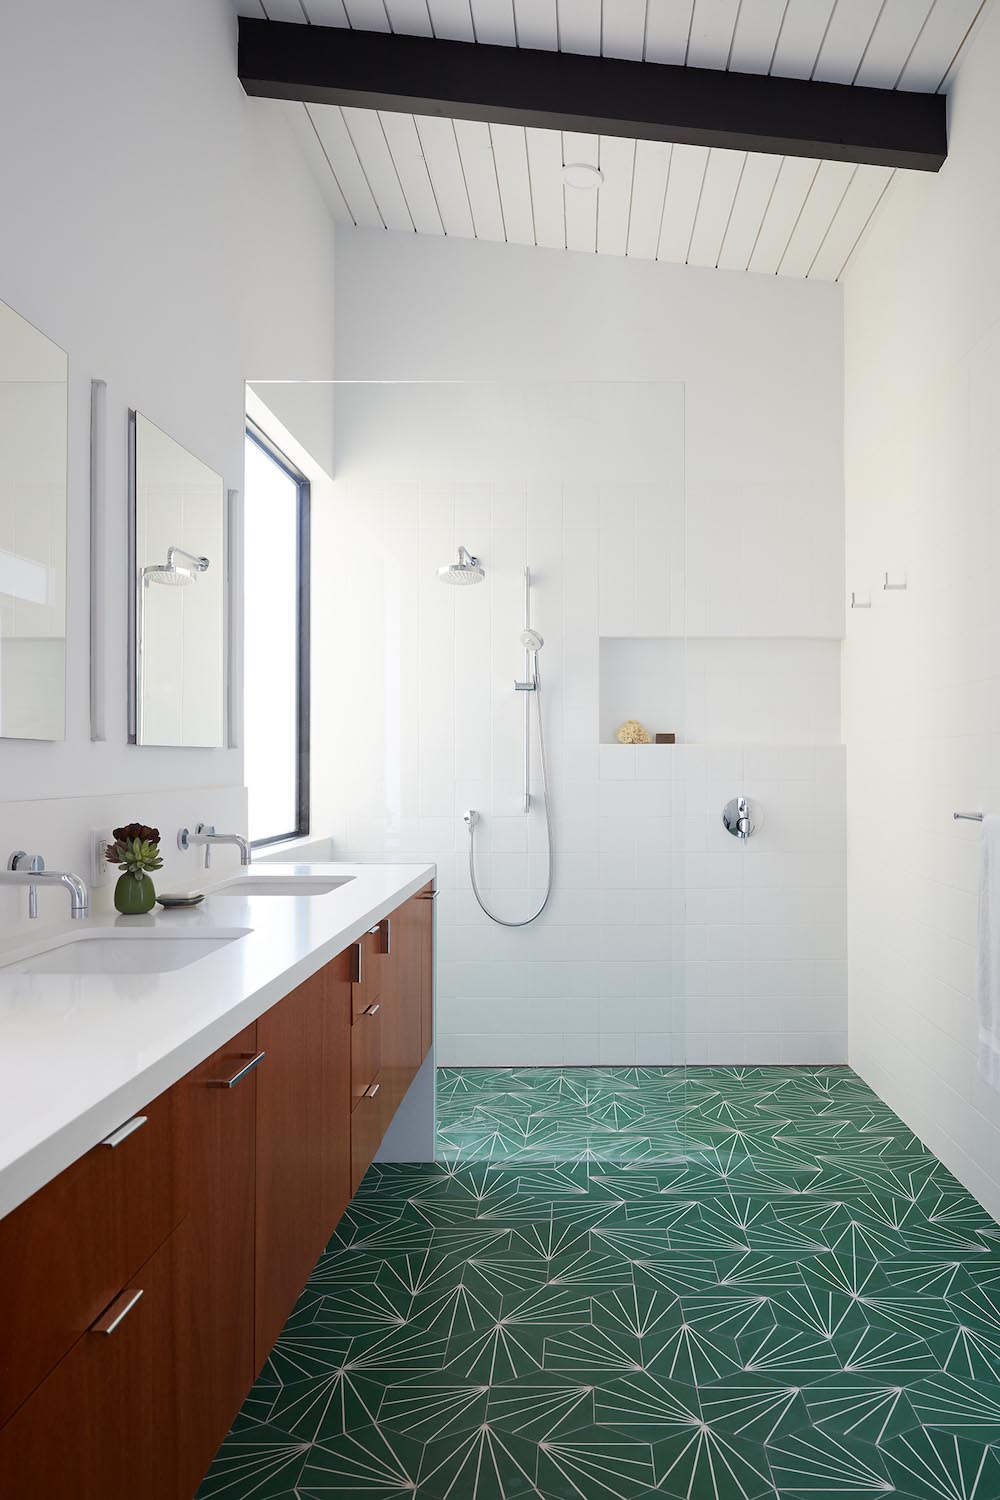 A modern white bathroom with green starburst tiles and a wood vanity.